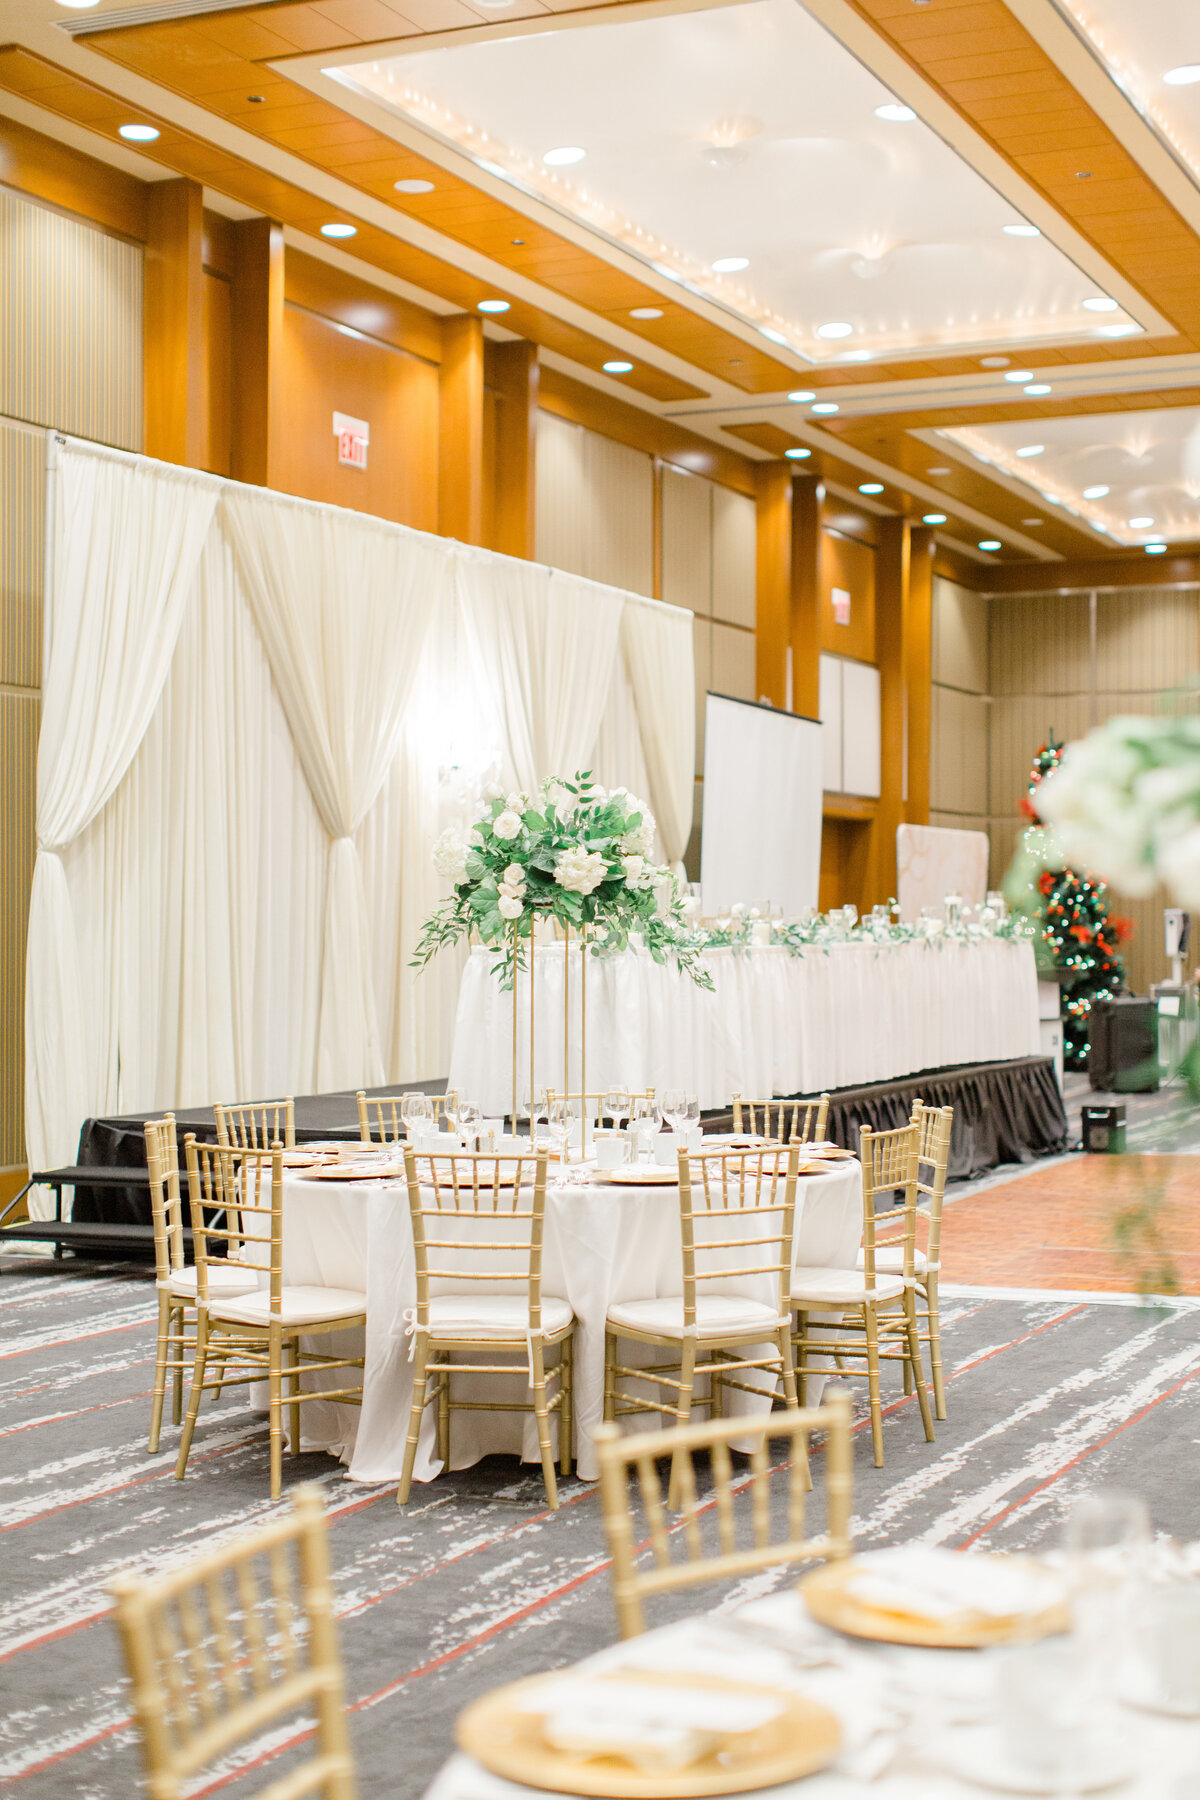 gold-white-black-tie-theme-NYE-wedding-2019-brookstreet-hotel-kanata-ontario-grey-loft-studio-28